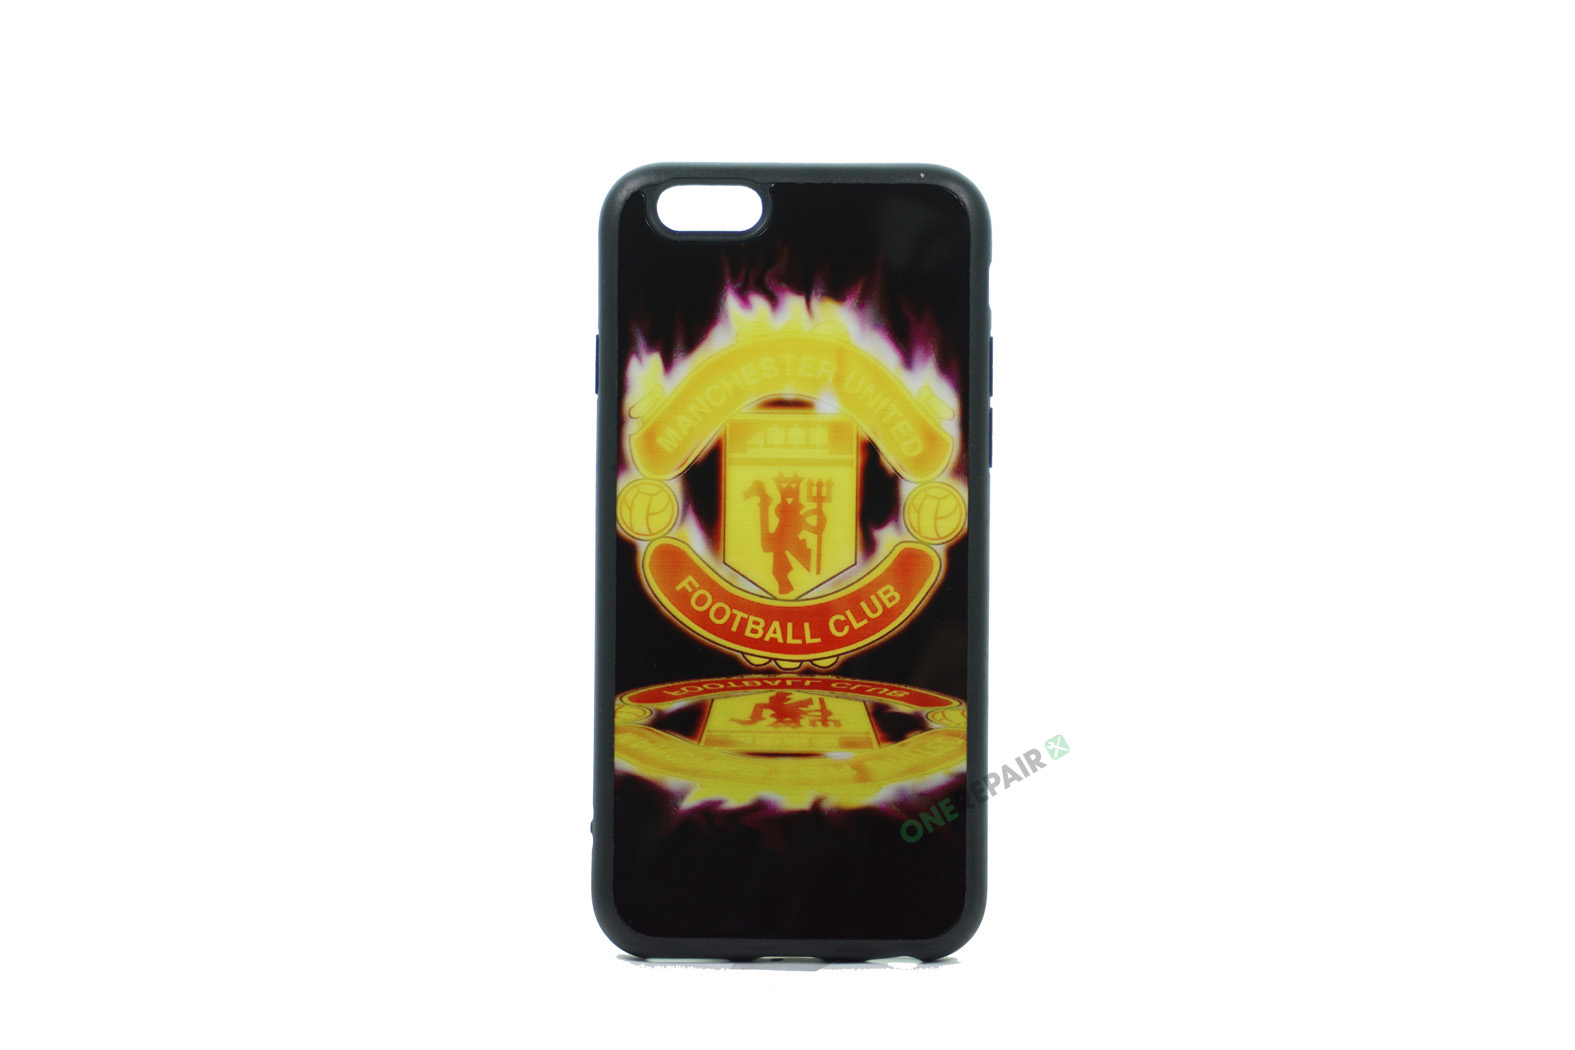 350604_iPhone_6_6S_Fodbold_Cover_Manchester_United_Flame_OneRepair_00001